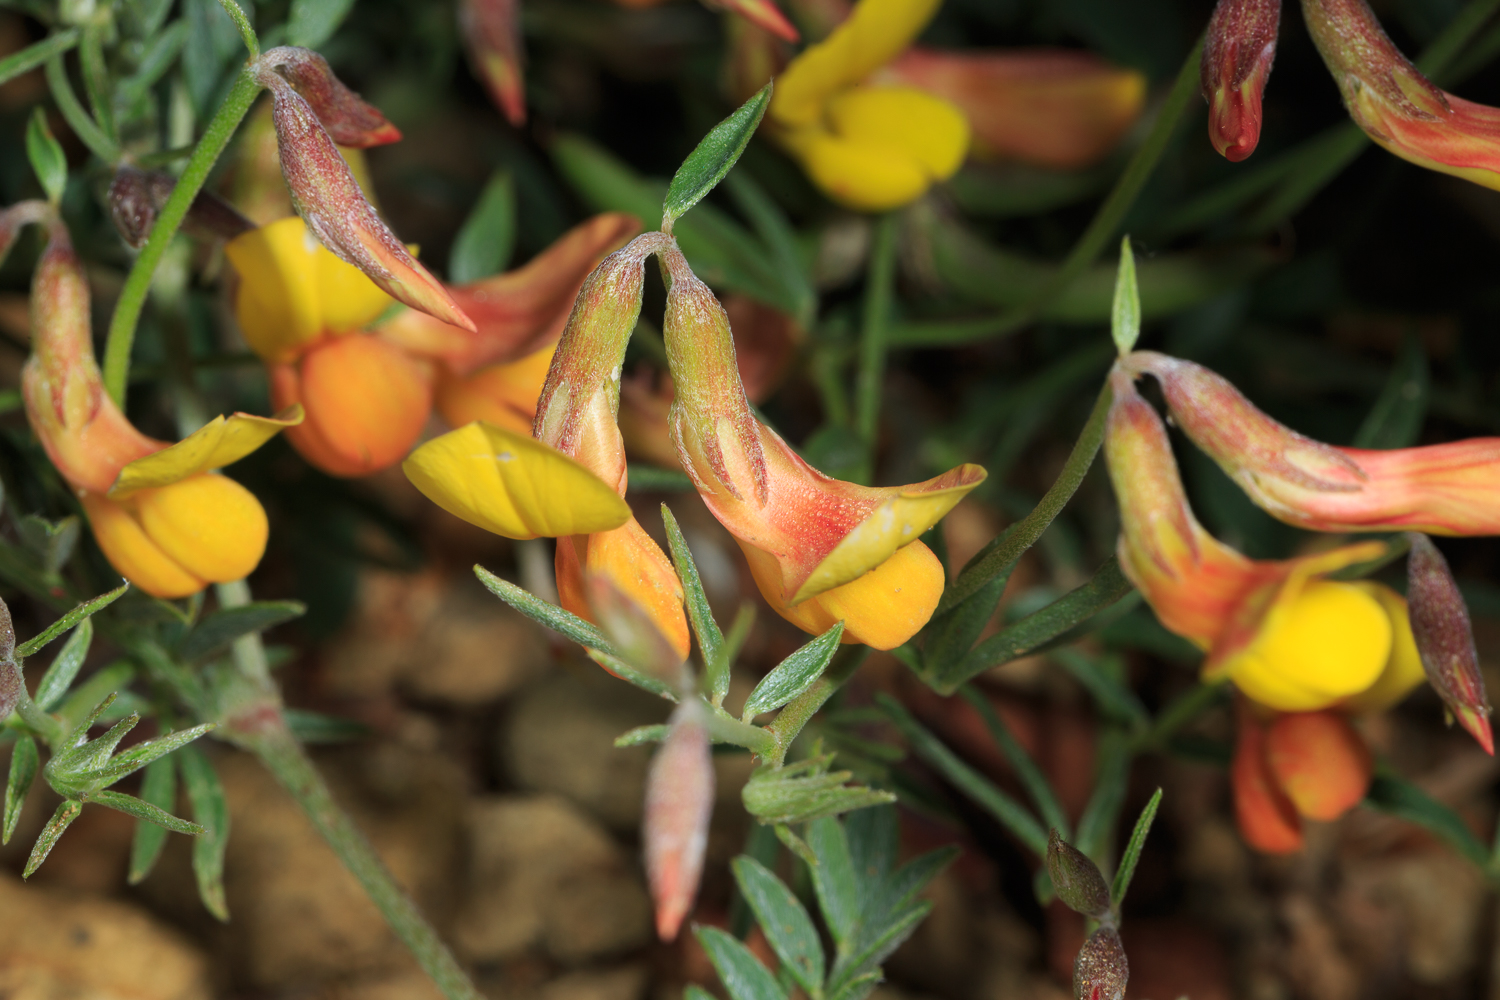 New Mexico Bird's Foot Trefoil - Big Bend NP / Lost Mine Trail (2015)